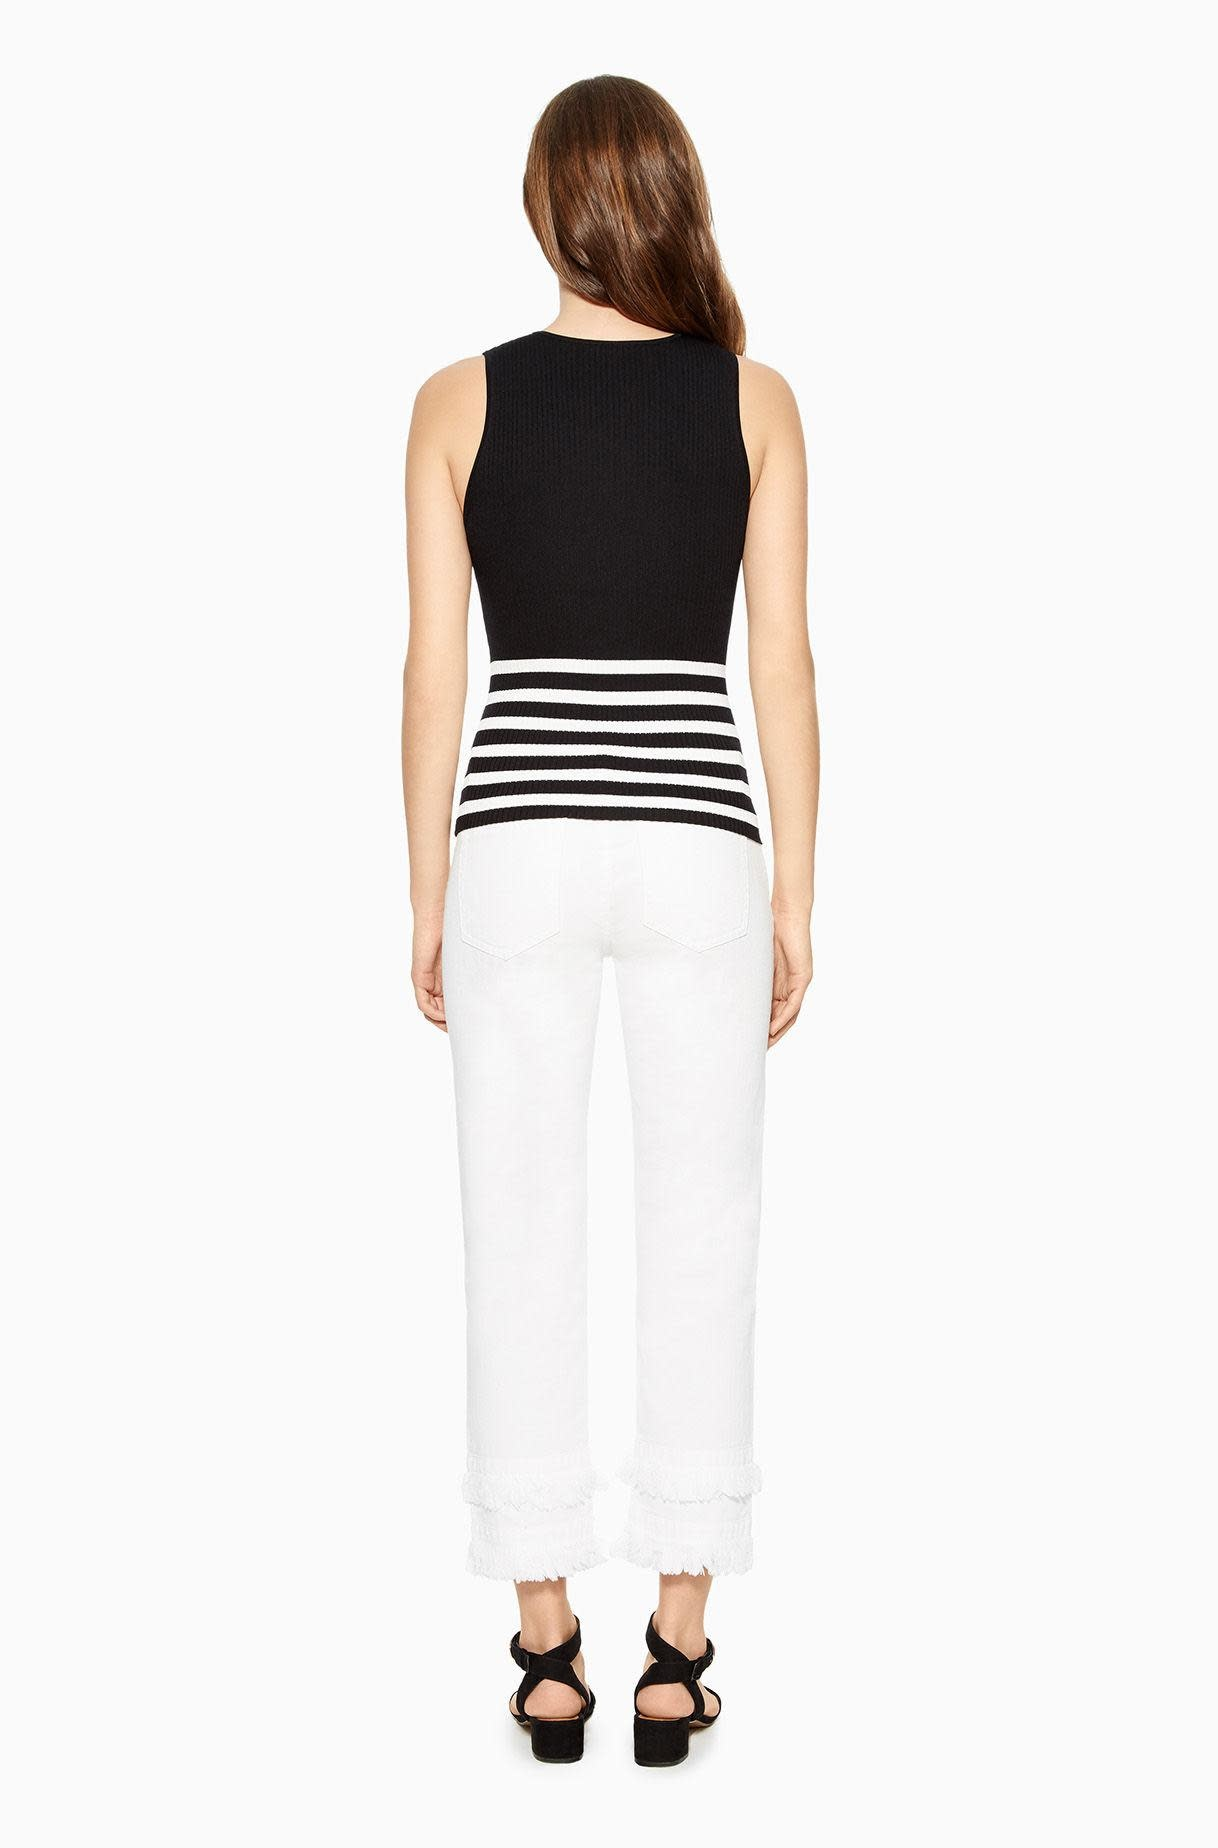 Parker NY Winifred Top/ Black White/ L